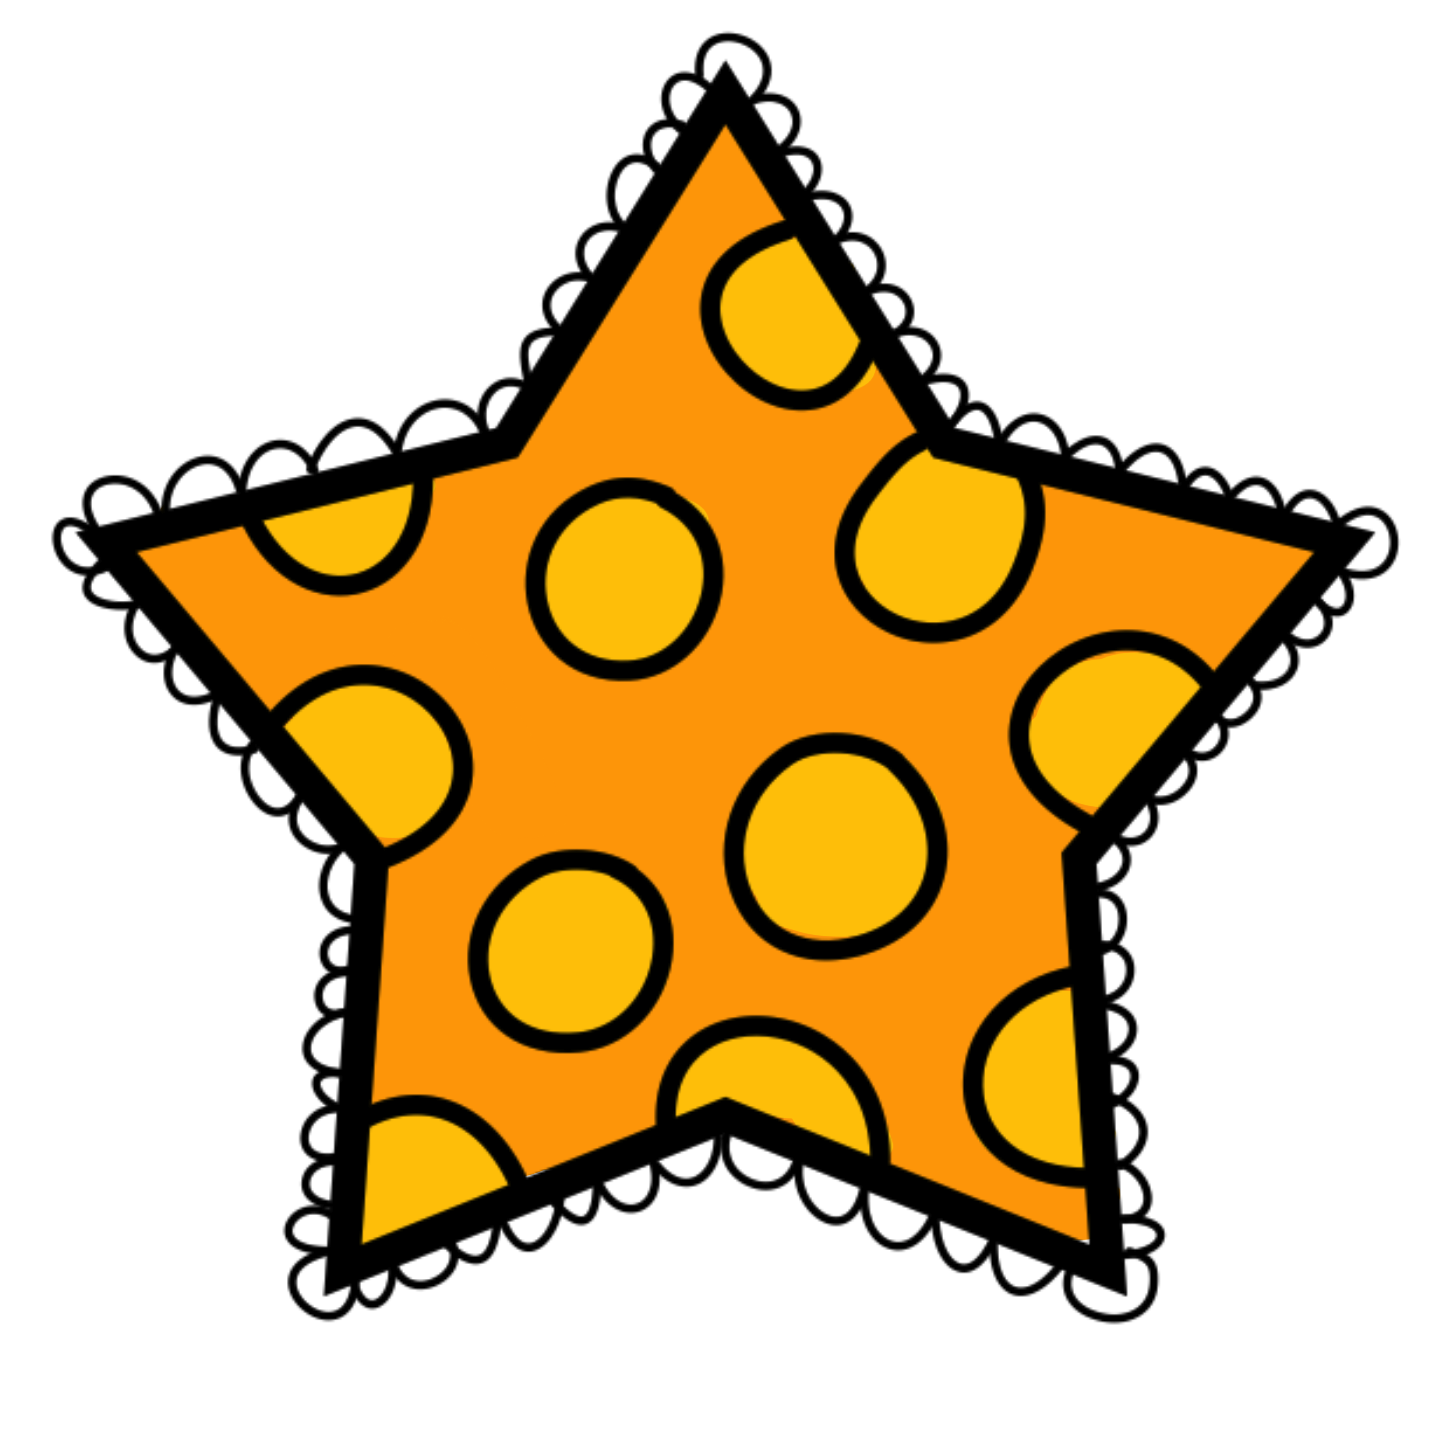 Polka dot star clipart image freeuse library Free Star Clipart For Teachers image freeuse library